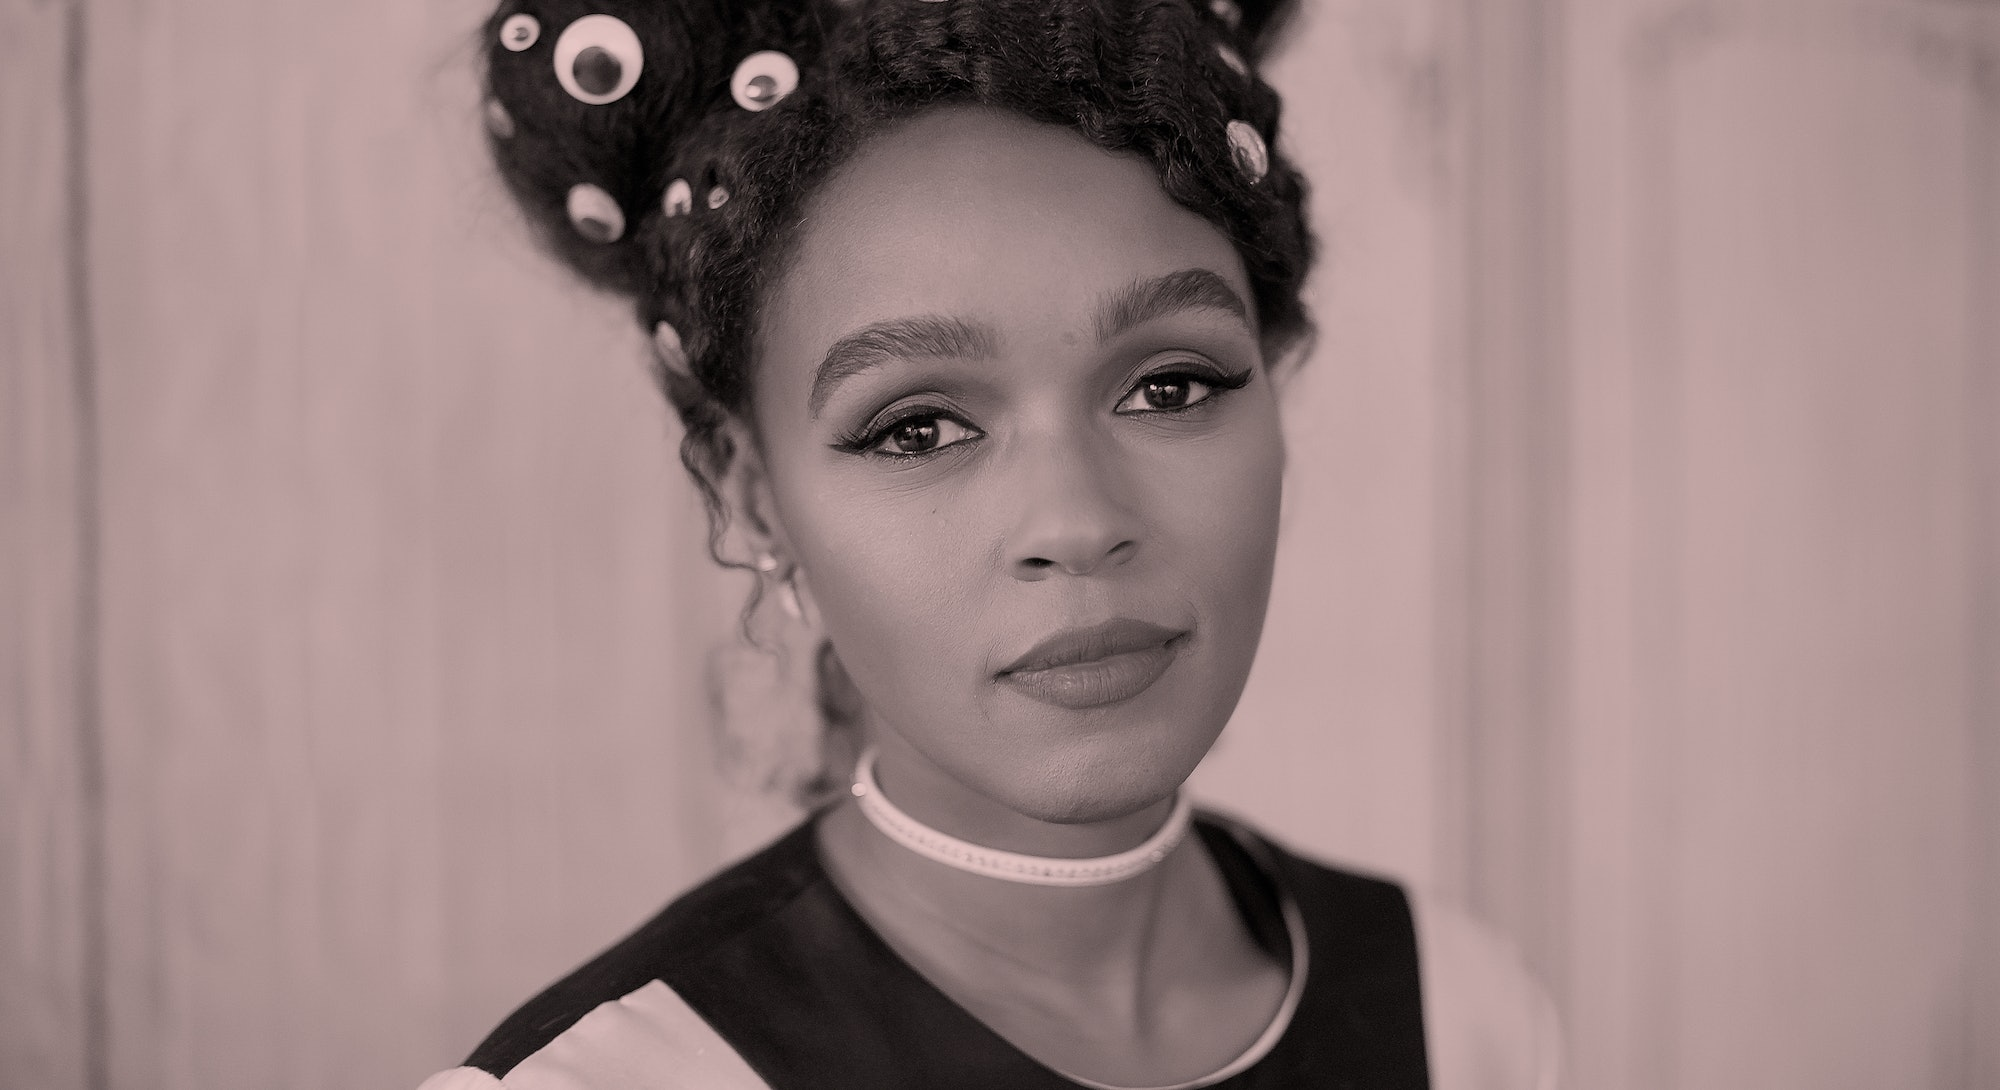 Janelle Monae, wearing her hair in two braided space buns that featured eye stickers, smiles at the ...